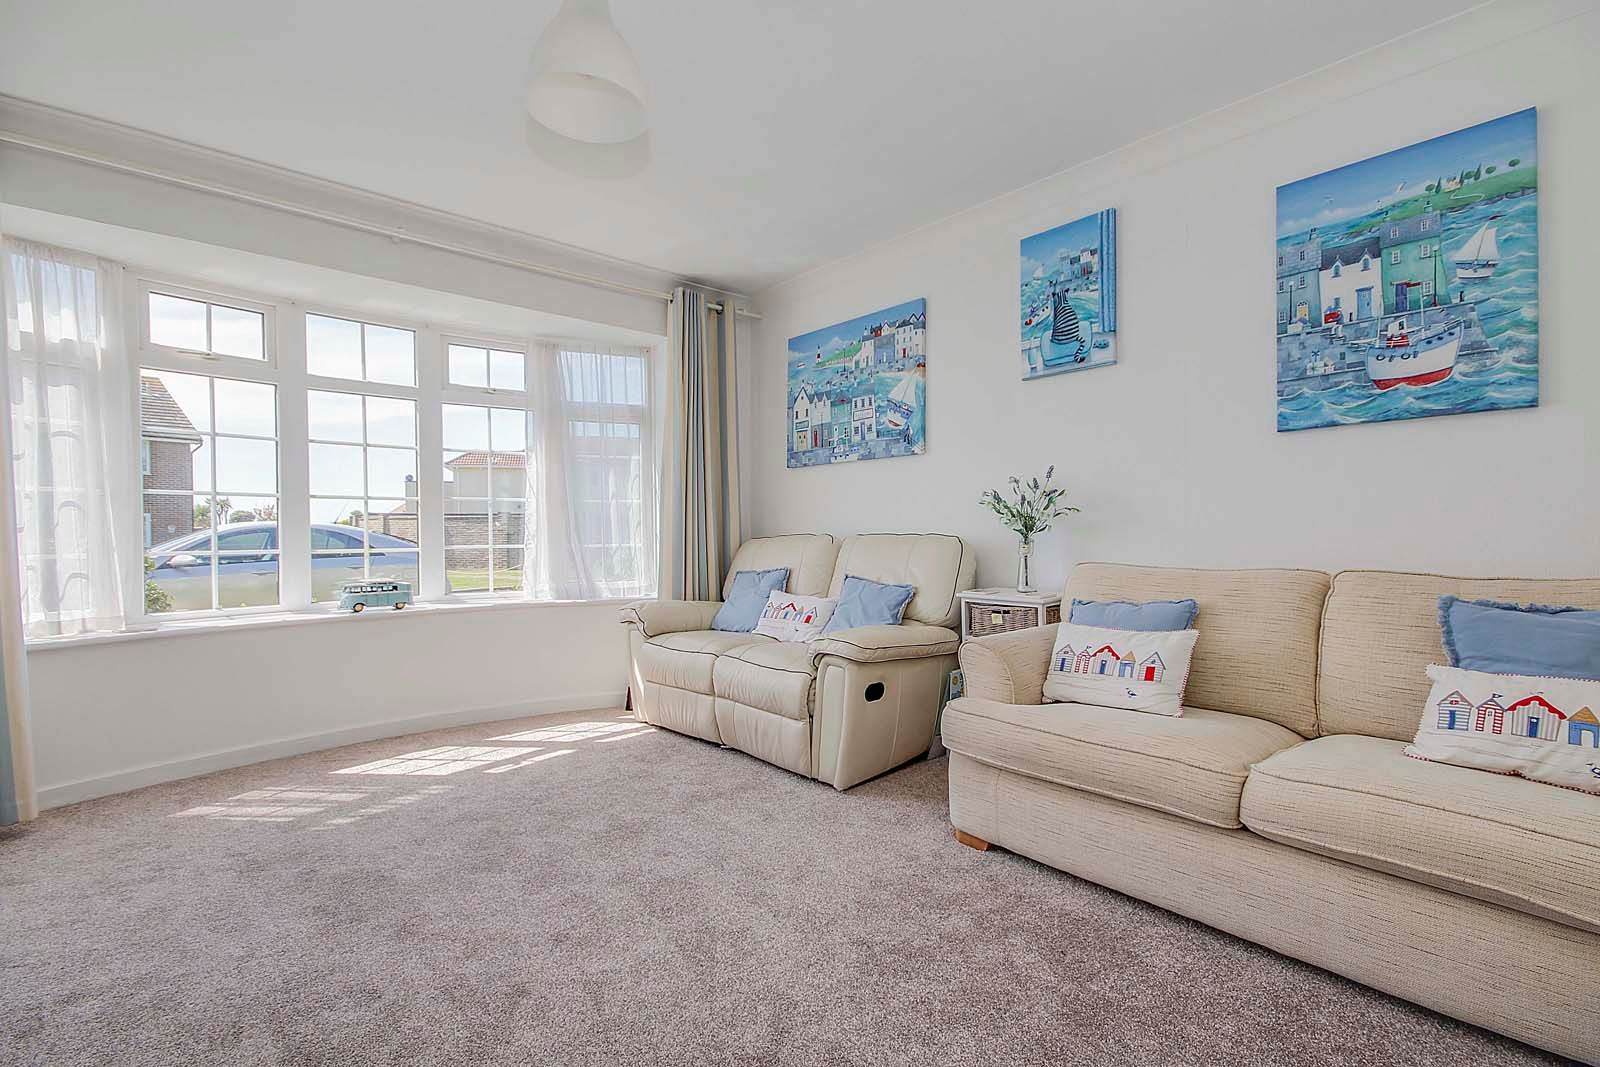 2 bed  for sale in Ferring Marine 4